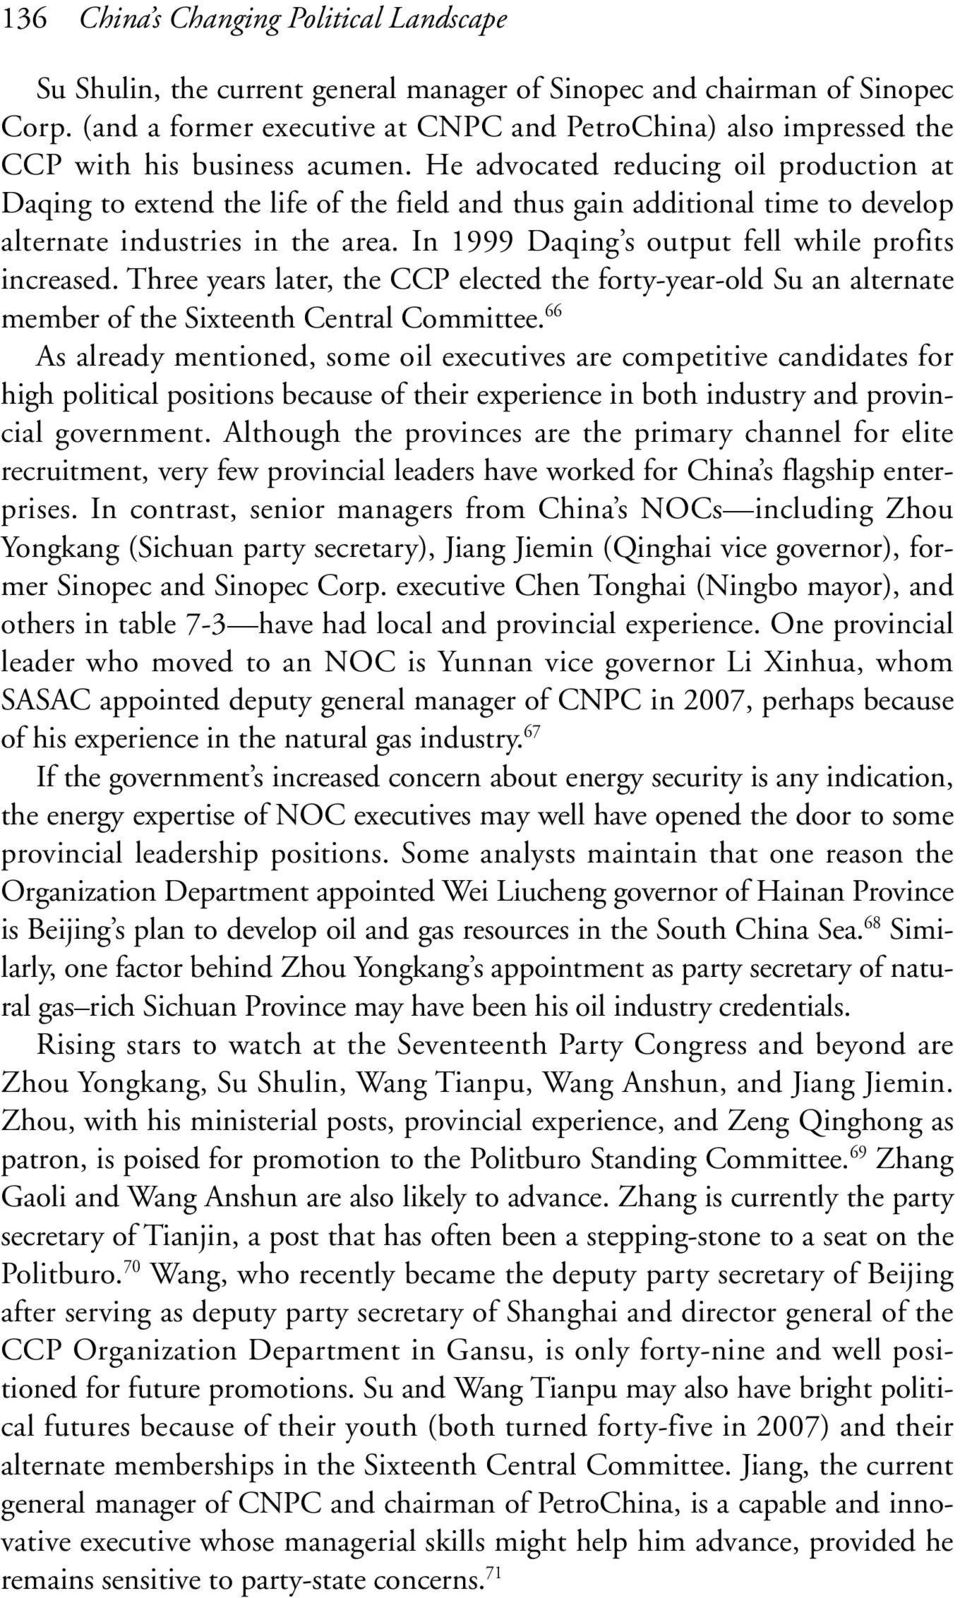 He advocated reducing oil production at Daqing to extend the life of the field and thus gain additional time to develop alternate industries in the area.